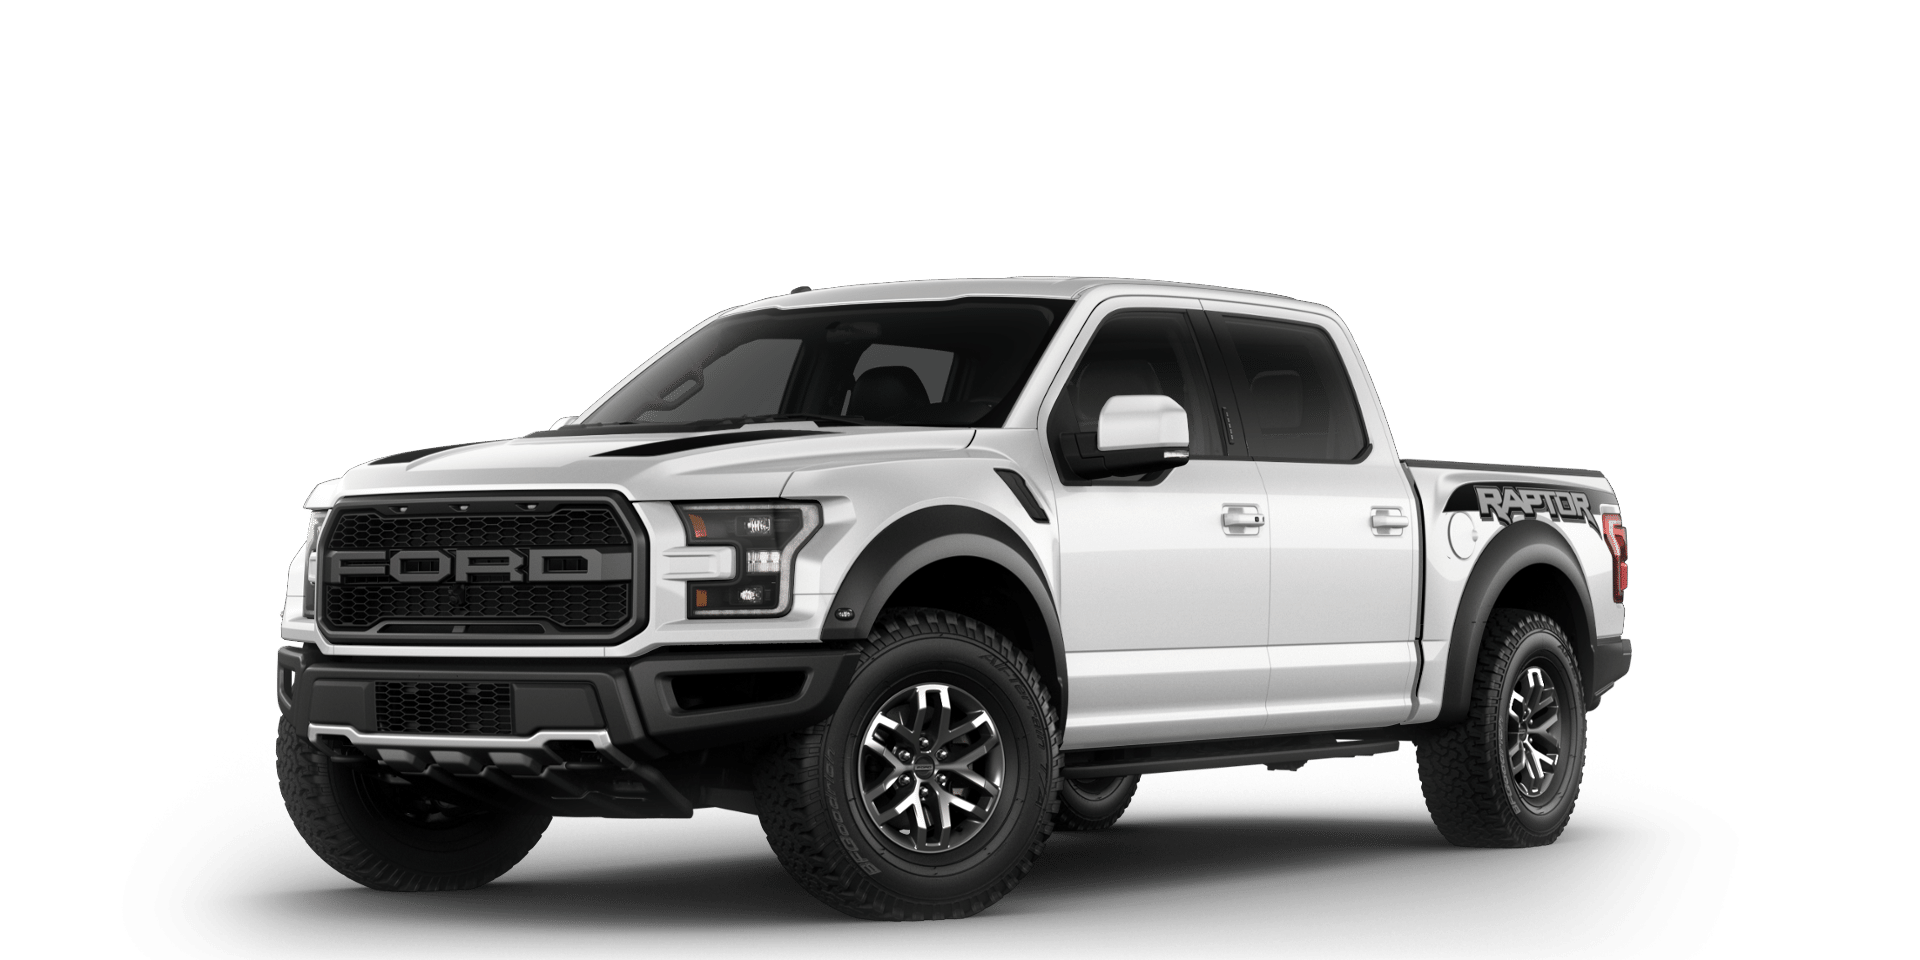 Img X in addition Maxresdefault besides Ford F Raptor together with S Na as well Ford F Raptor Supercab Car Wallpaper. on 2017 ford f 150 raptor